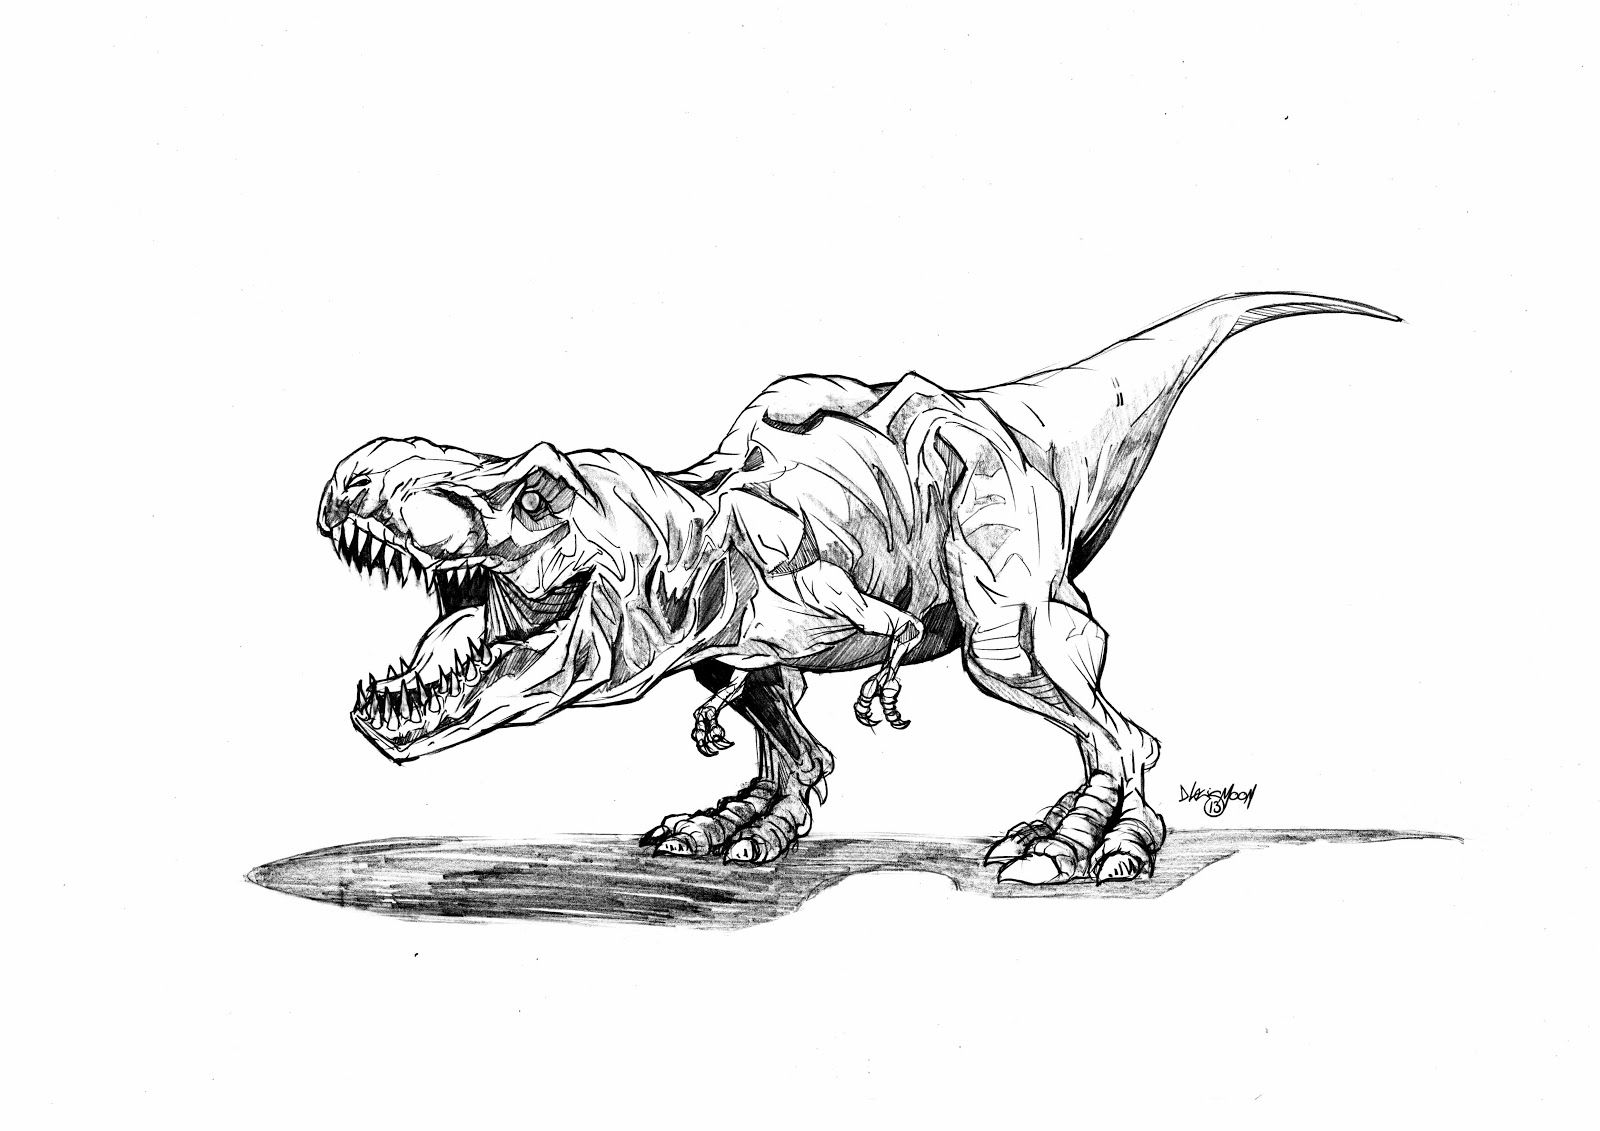 Colouring in jurassic park - Jurassic Park Trex Colouring Pages